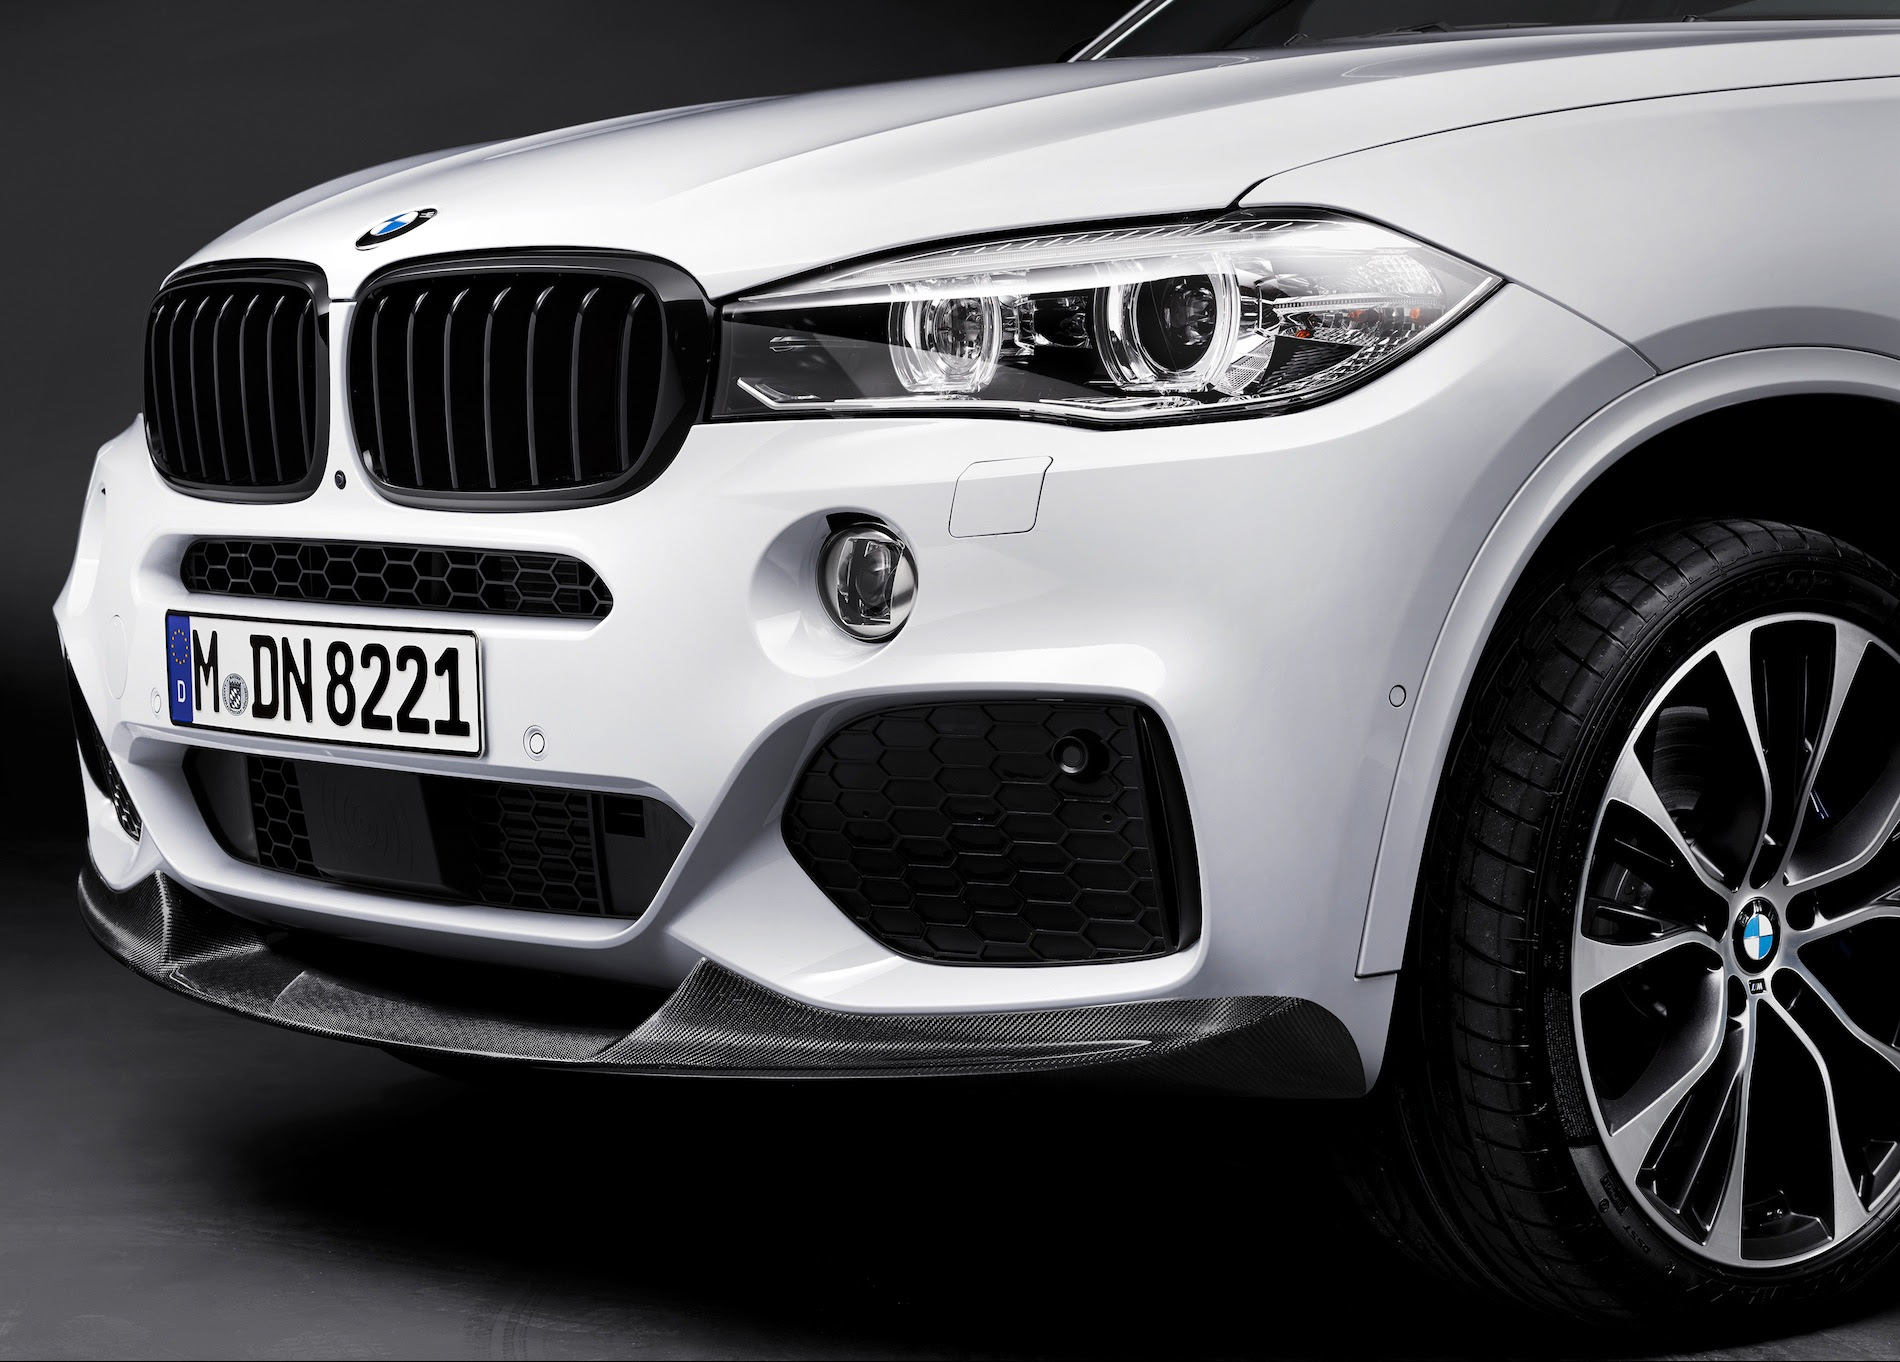 BMW F15 X5 M Performance Parts Now Available For U.S.